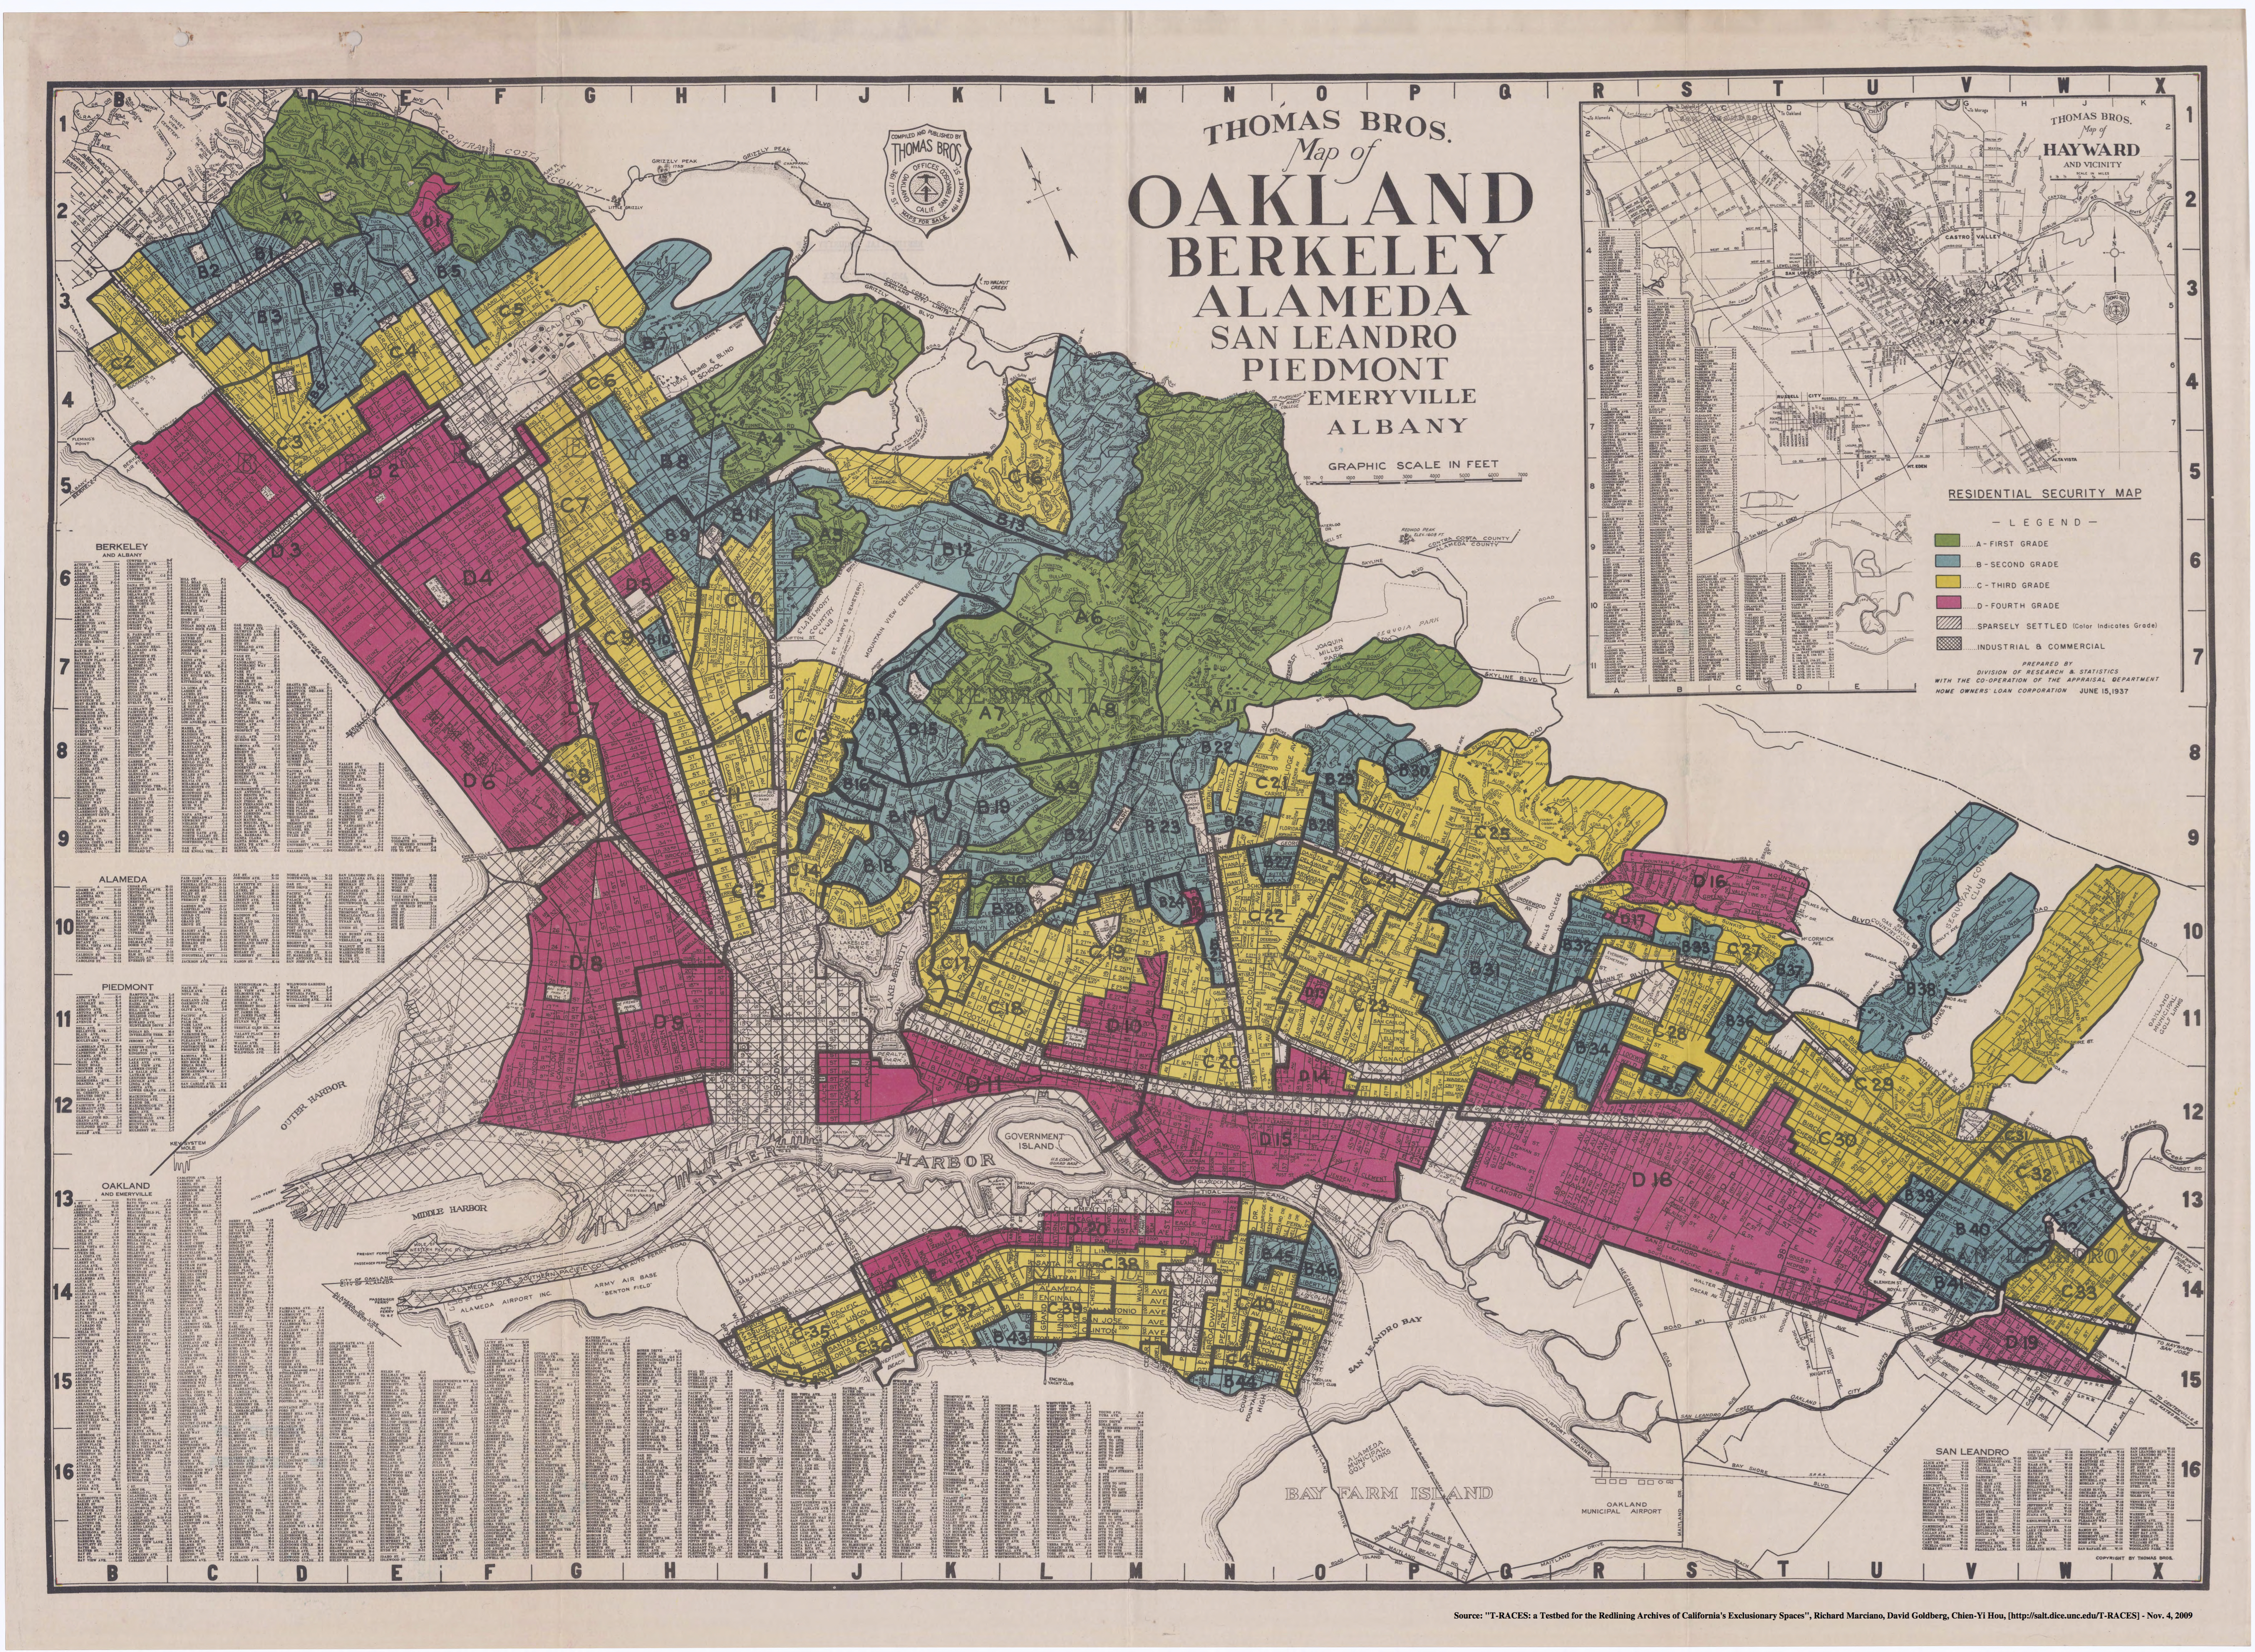 Oakland California Us City Street Map Stock Vector Art   More Images furthermore Maps of Oakland  CA Large Historic Maps For Sale likewise Oakland Ca Map Maps Of California Where Is Oakland California On A further Map Of Oakland Gangs Hoods For California   touran me as well Oakland Tourist Map   Oakland California • mappery besides  as well Redlining Oakland  1936 1939 additionally Maps   Directions   Oakland International Airport further Oakland Maps and Orientation  Oakland  California   CA  USA also Map of Oakland  CA  California as well  moreover CA Oakland Website Photo Gallery Ex les Where Is Oakland additionally Map to Oakland Ice Center Operated by Sharks Ice  Oakland  CA in addition Oakland Gangs Territory Map Printable Oakland California together with Oakland  California  CA  profile  potion  maps  real estate furthermore . on map of oakland california